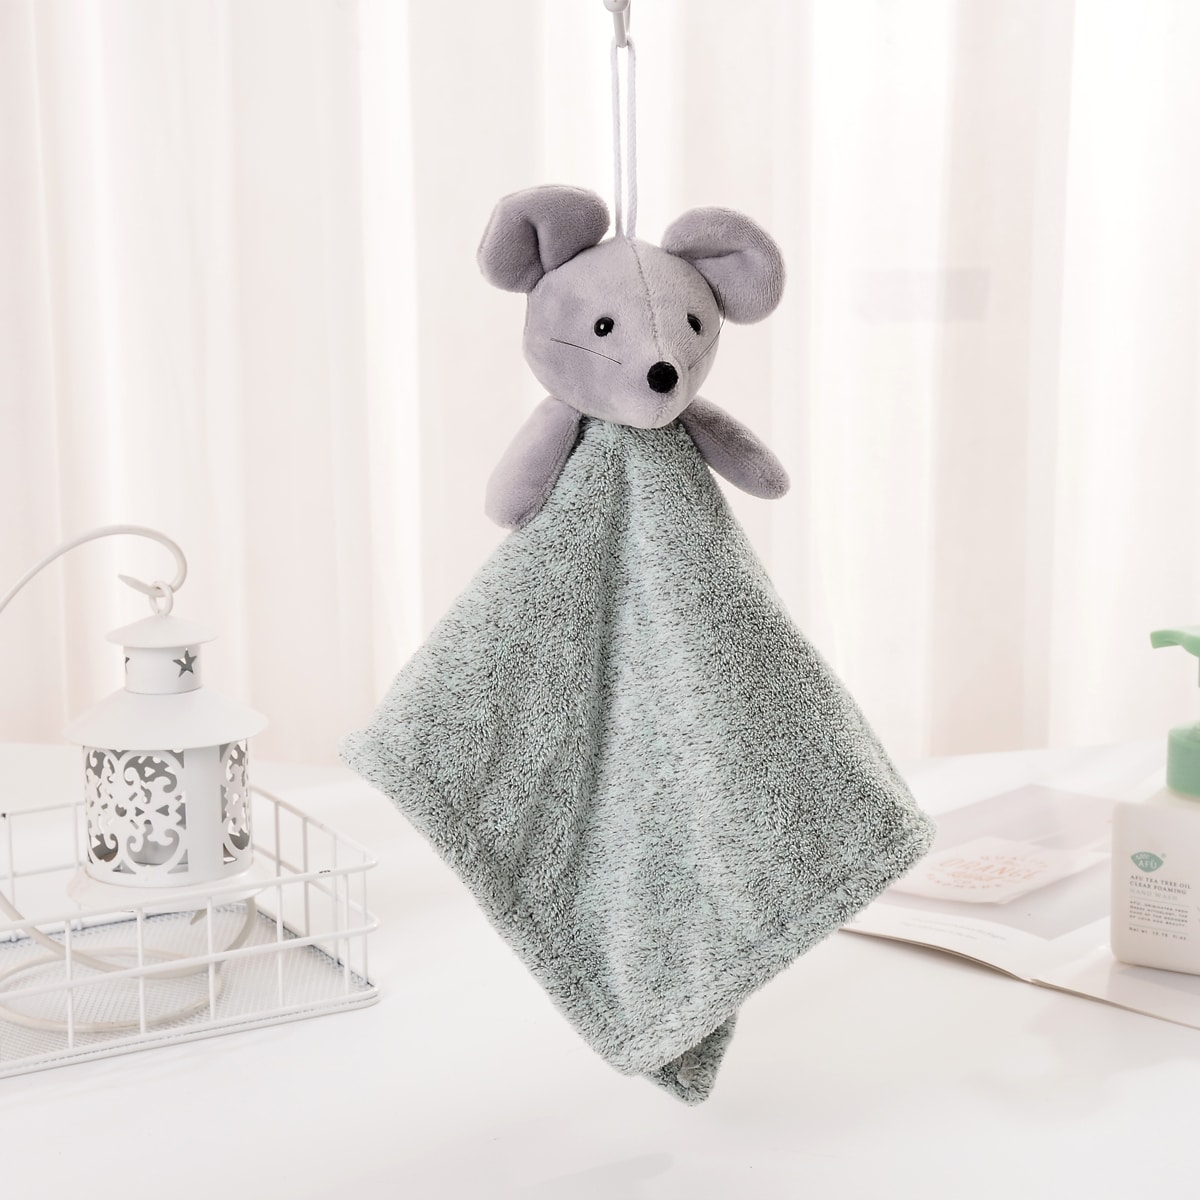 1Pc Mouse Hand Towel